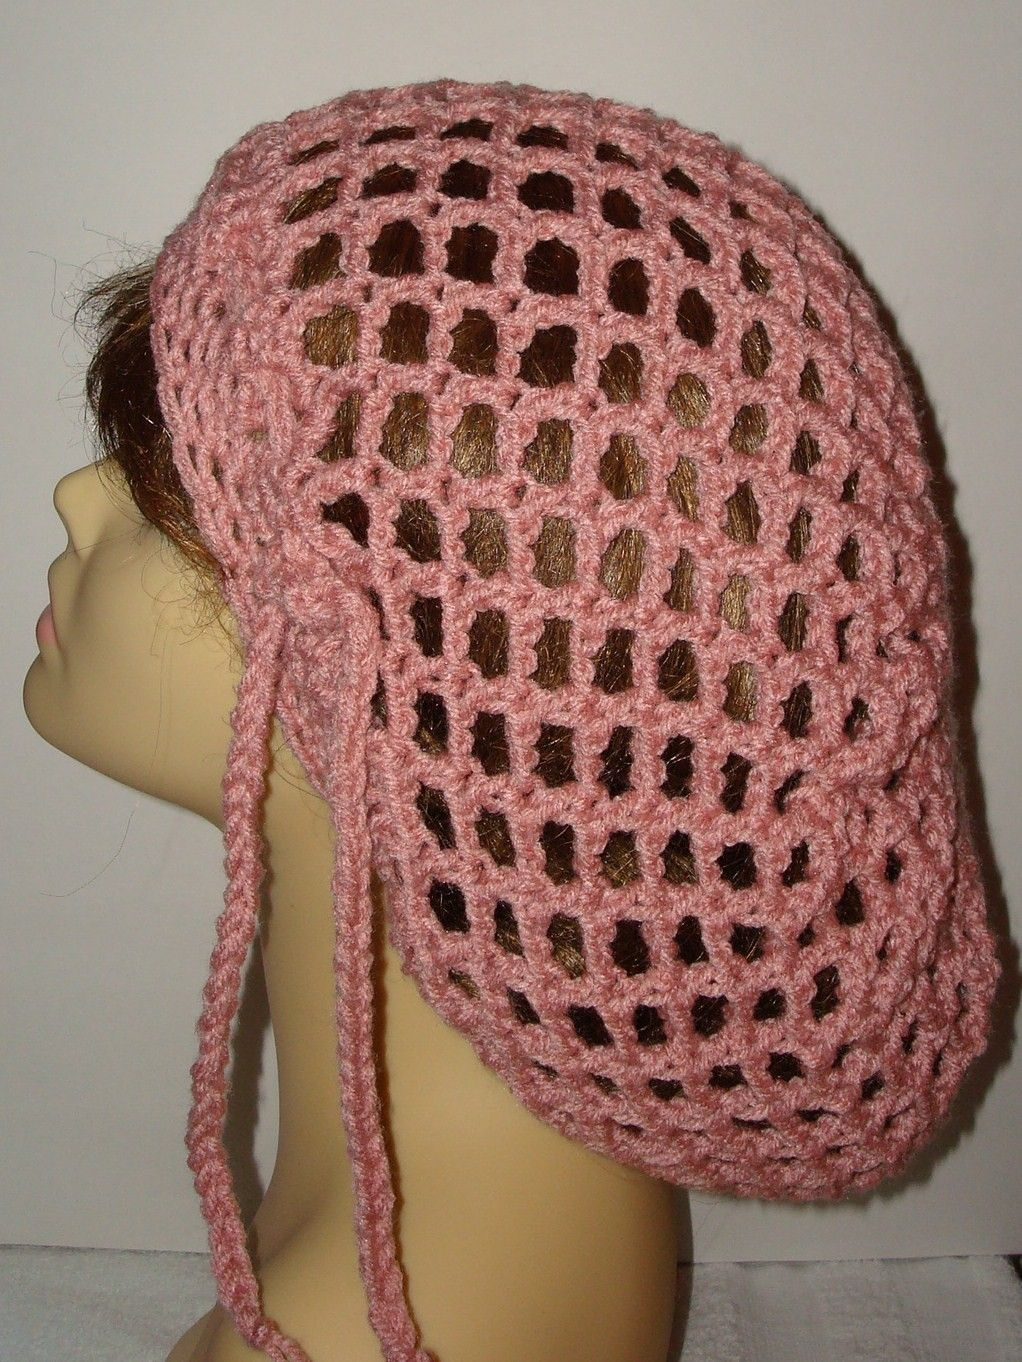 KNITTING PATTERN RASTA HAT - FREE PATTERNS | Crochet | Pinterest ...